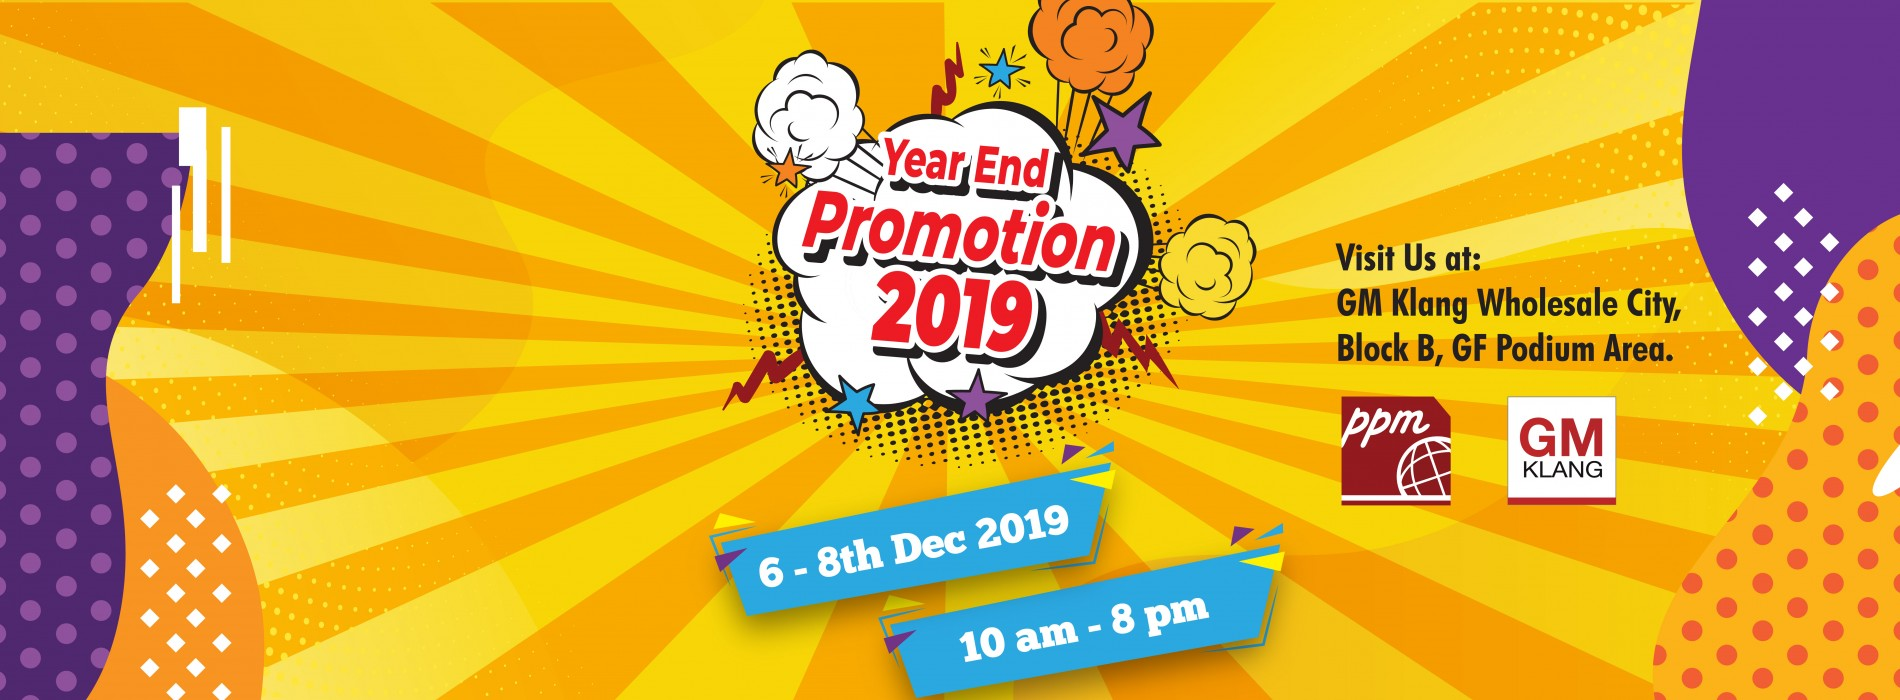 2019 Year End Promotion (PPM)